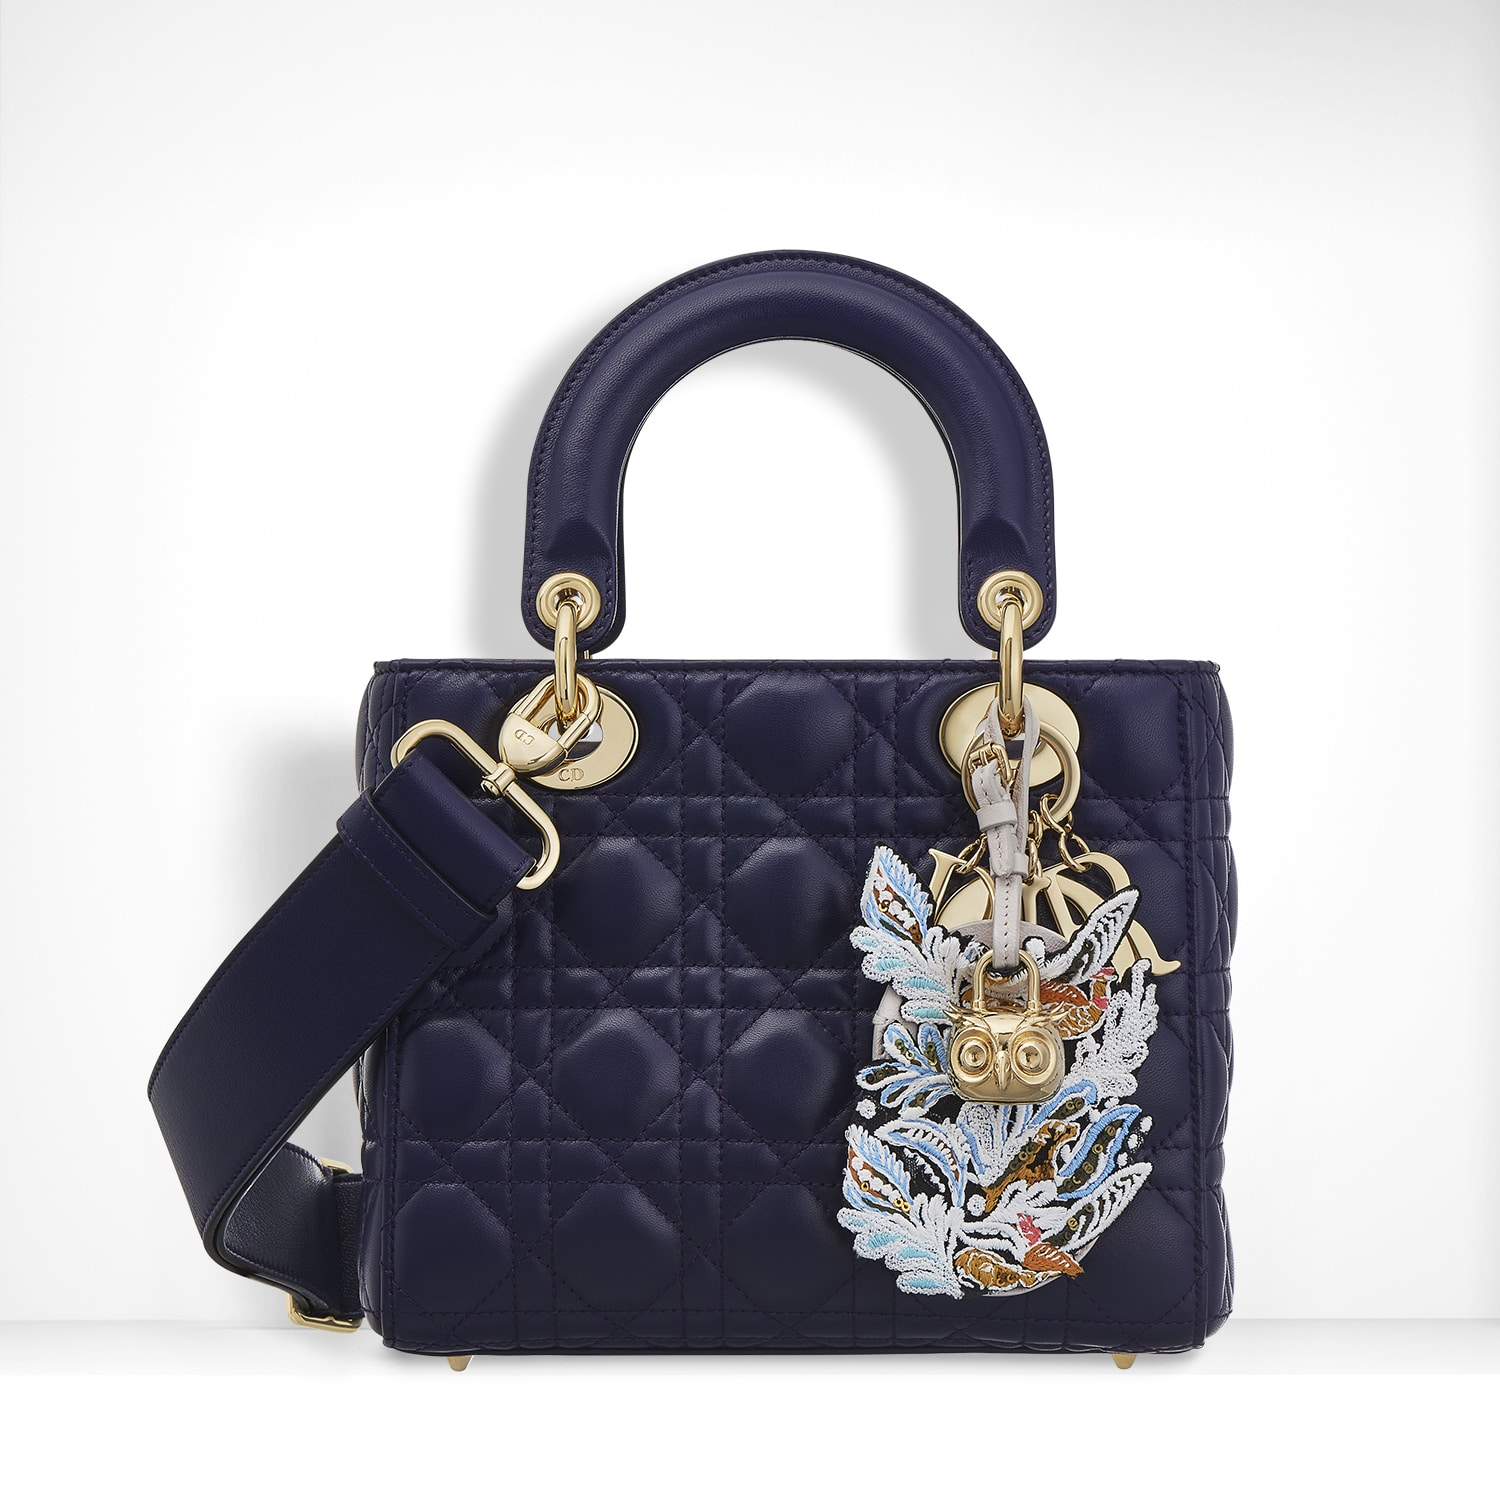 99ce732c9f4b Pictures of Lady Dior Bag Price 2017 - www.kidskunst.info